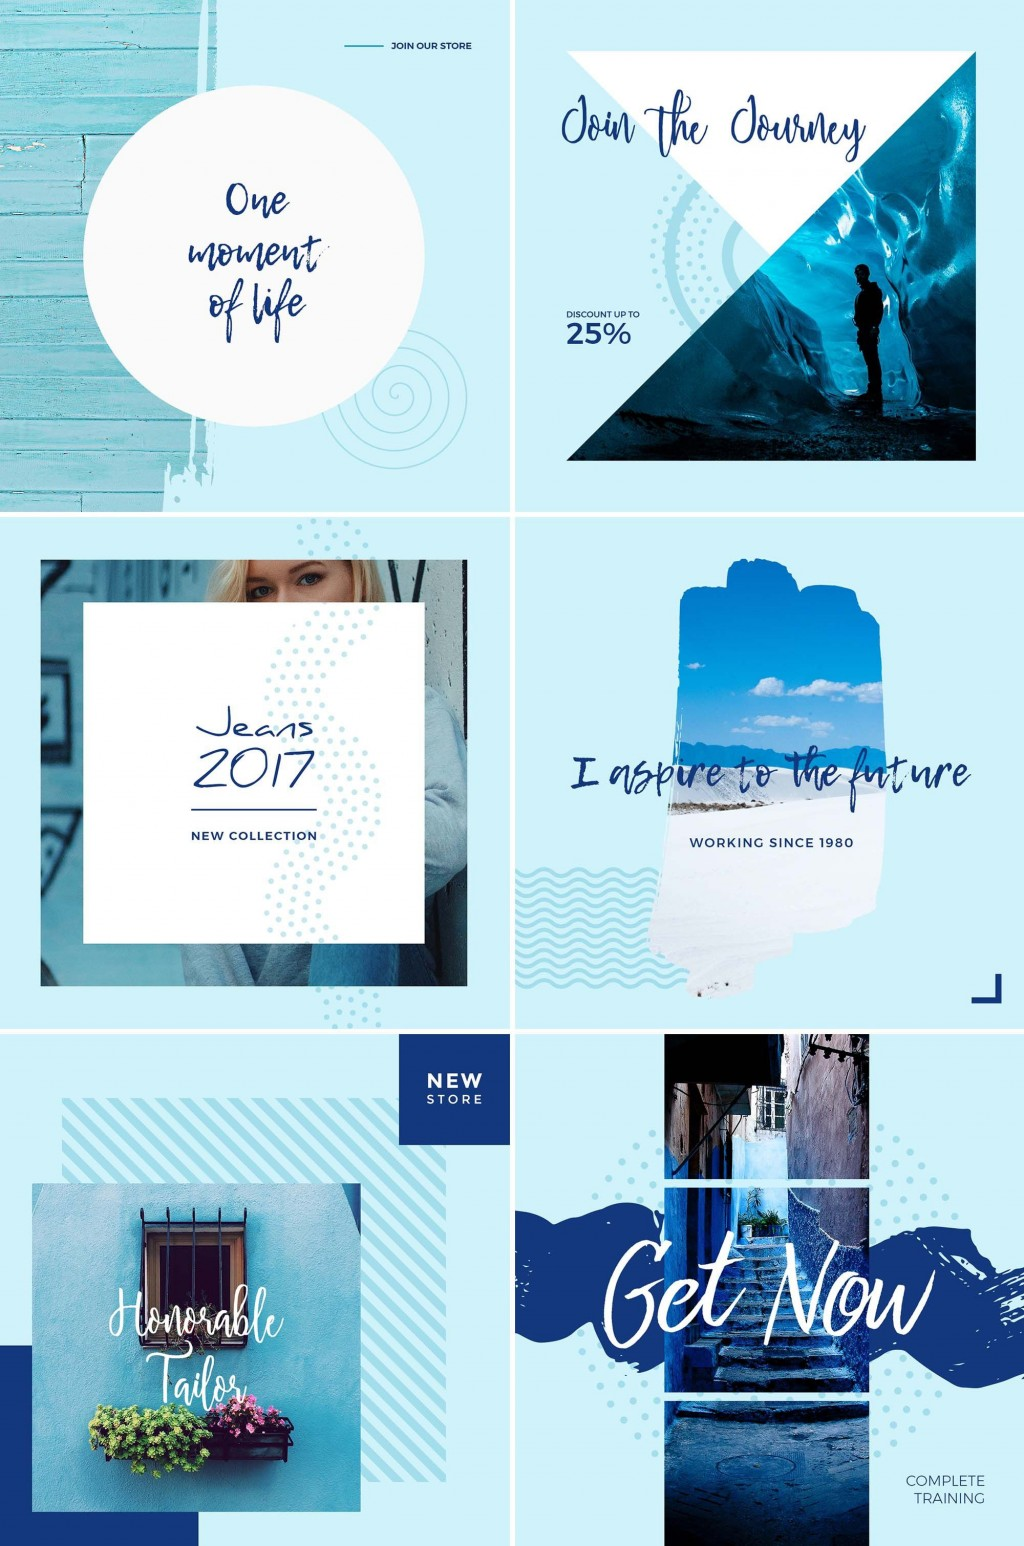 008 Fascinating Free Social Media Template Design  Templates Website Post Download For PowerpointLarge